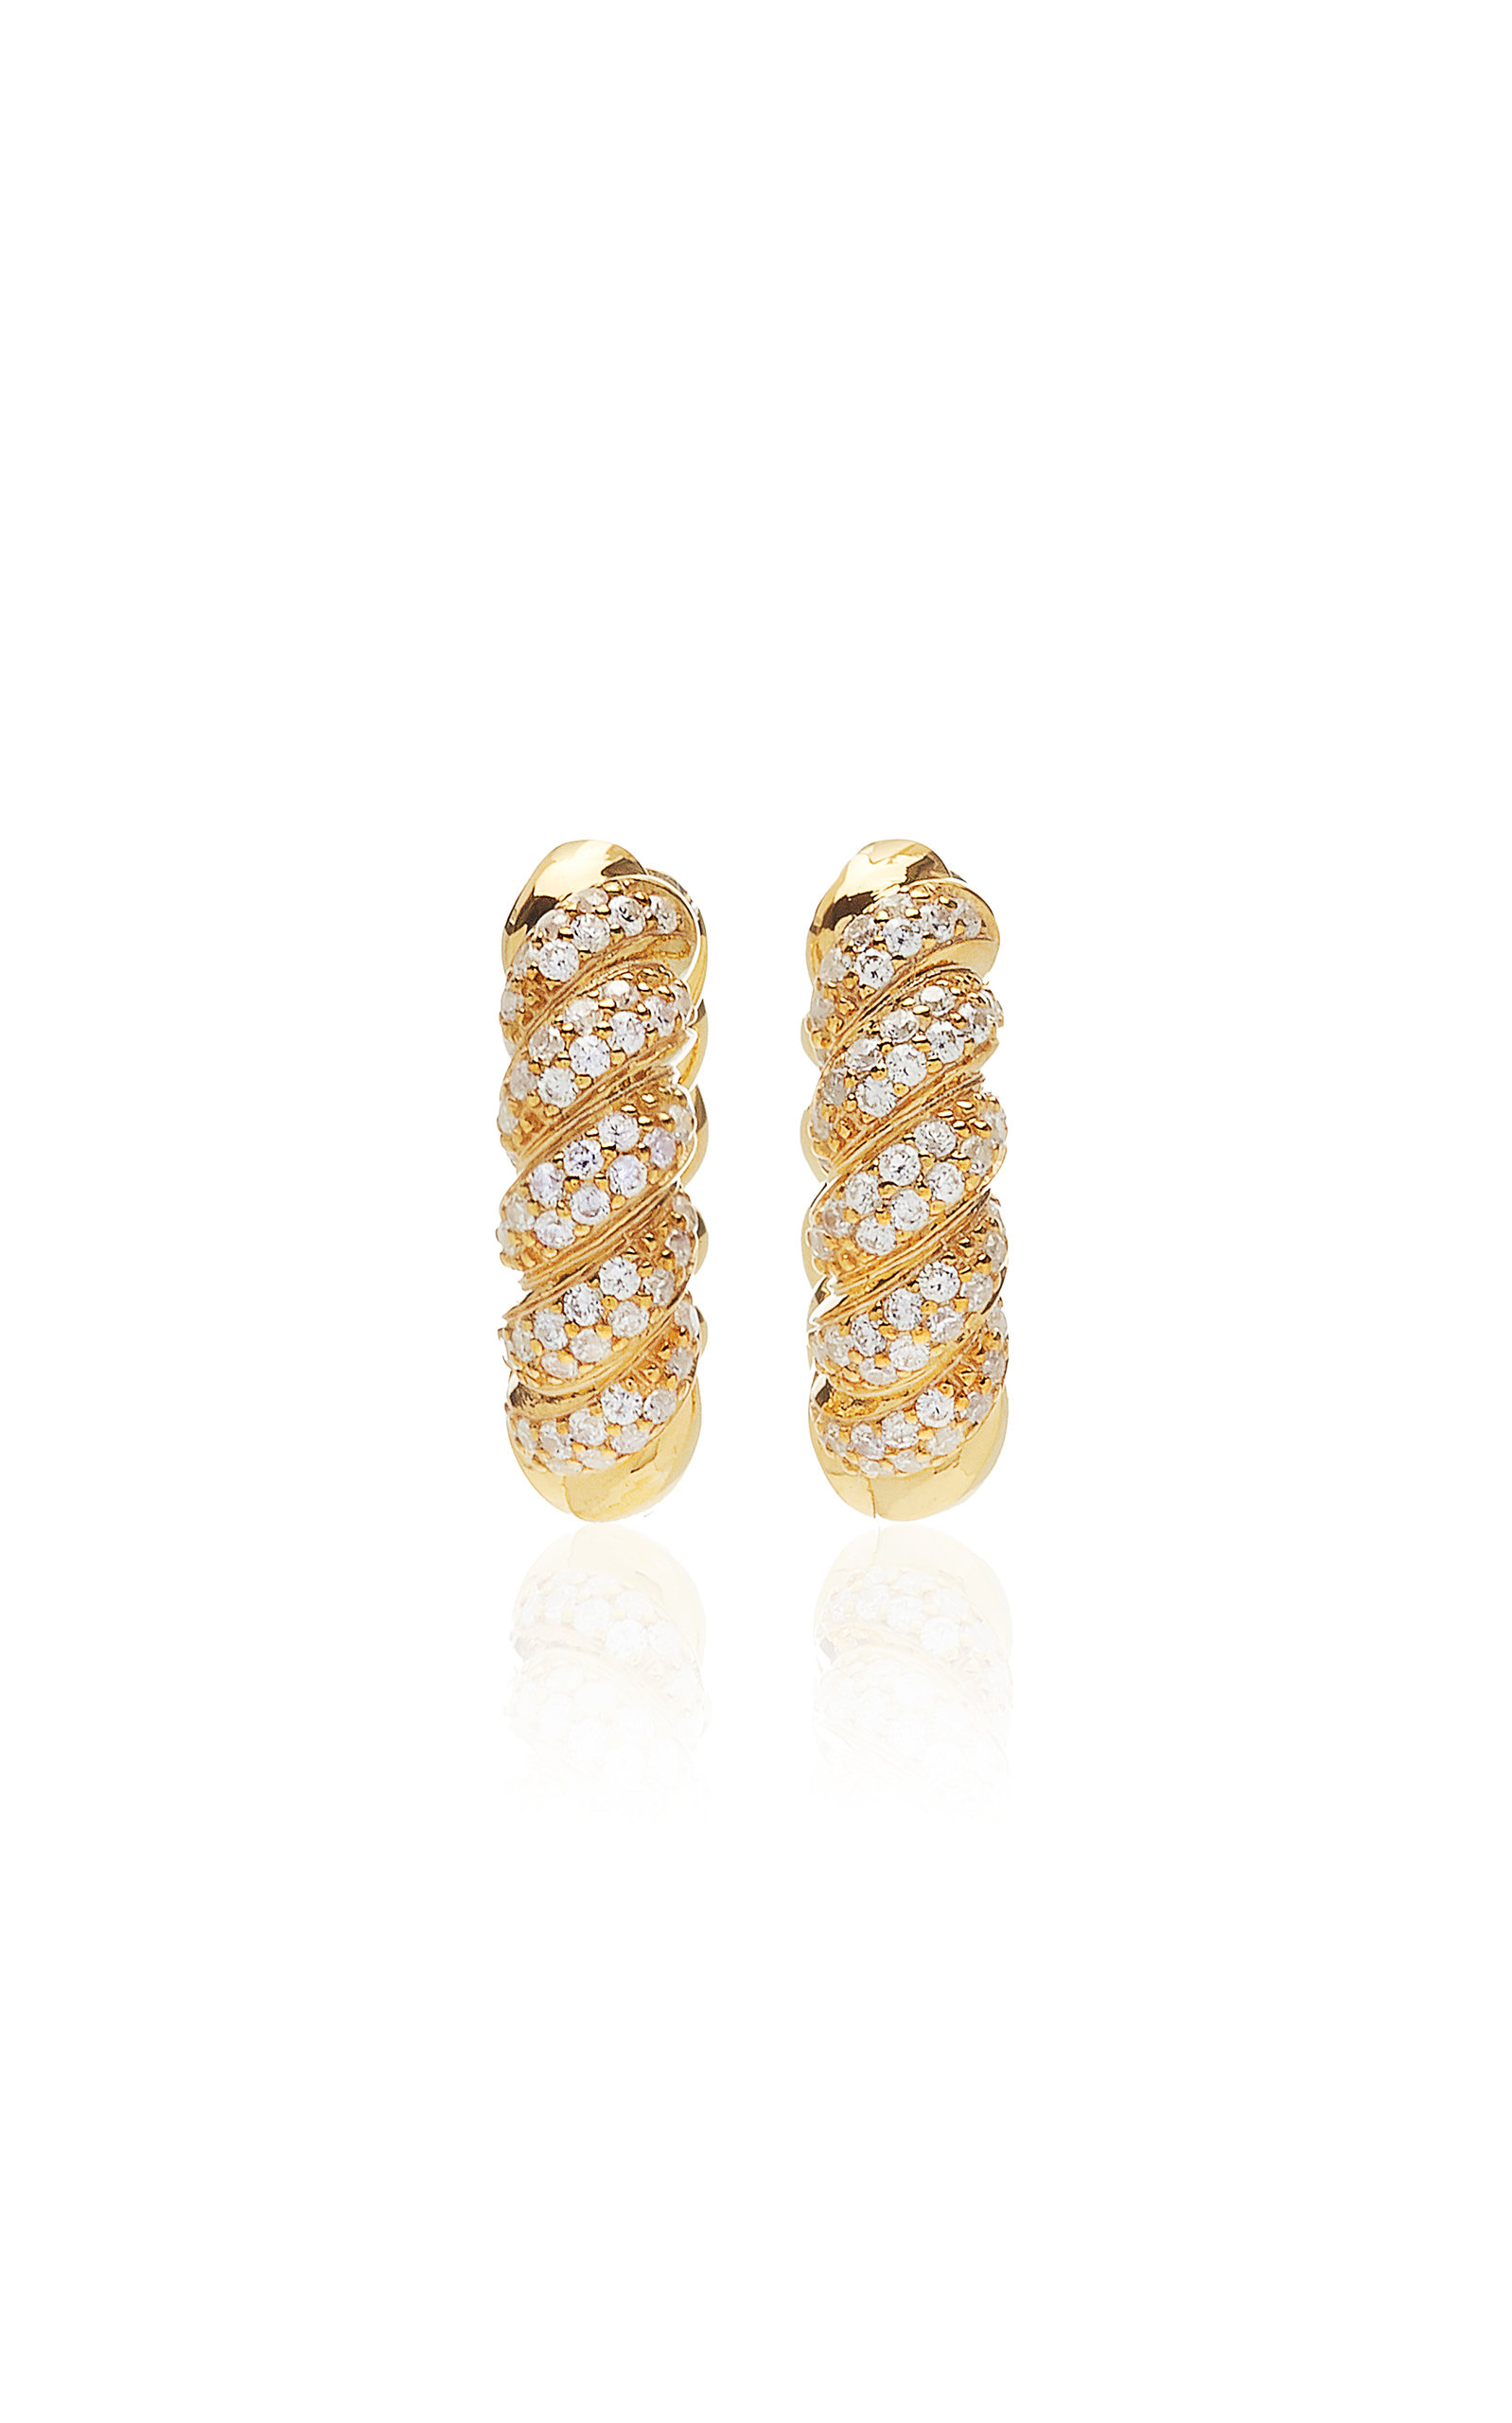 Women's Twisted Crystal-Embellished Gold-Plated Hoop Earrings